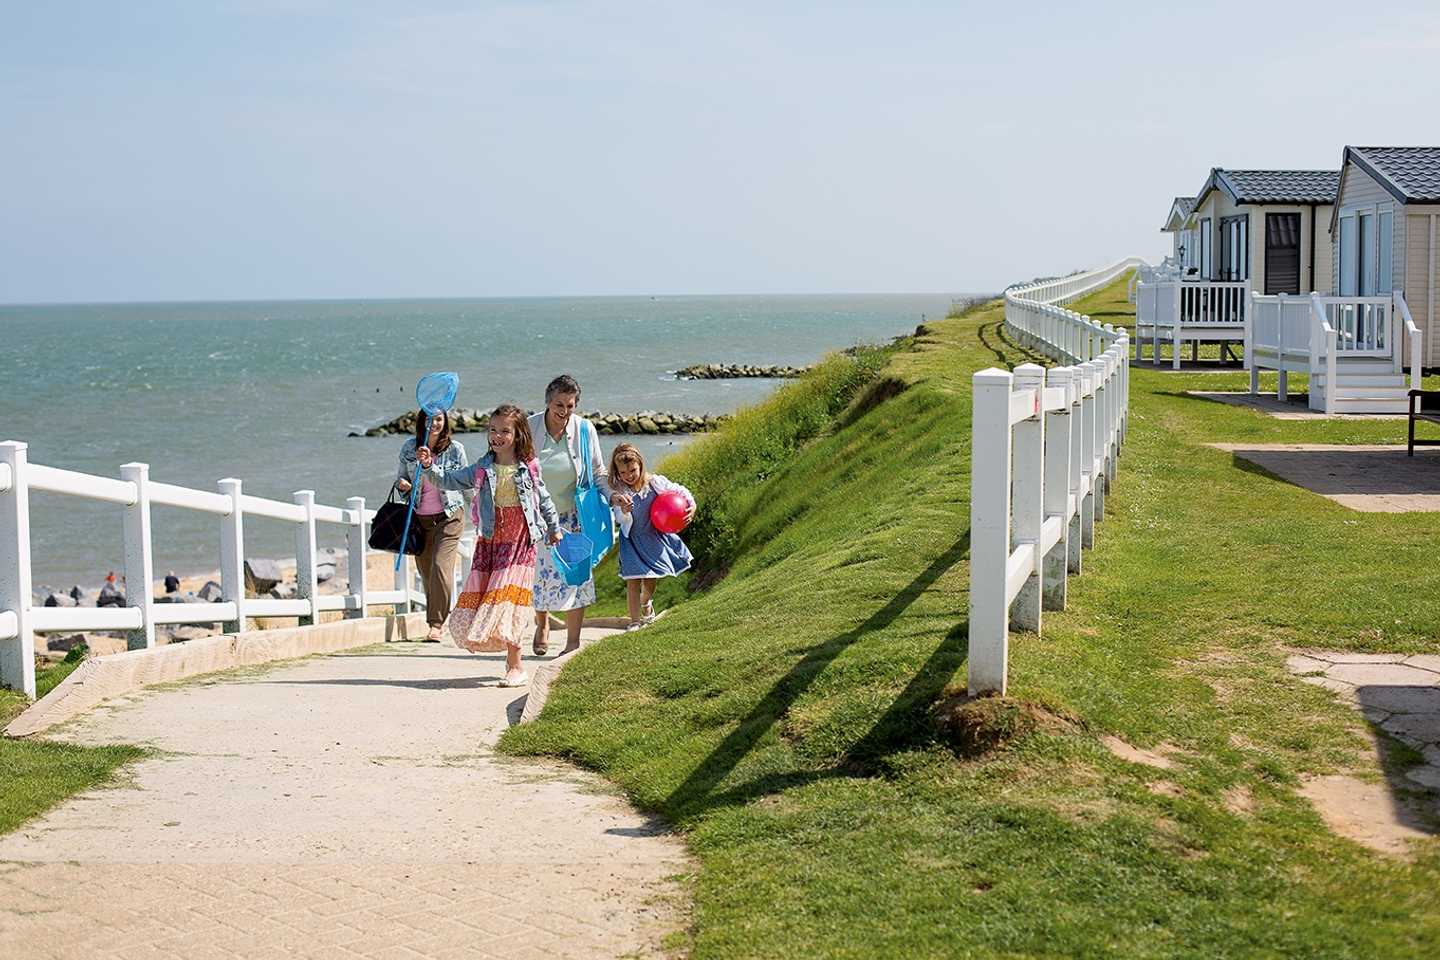 A family walking back from the beach via the direct access walkway